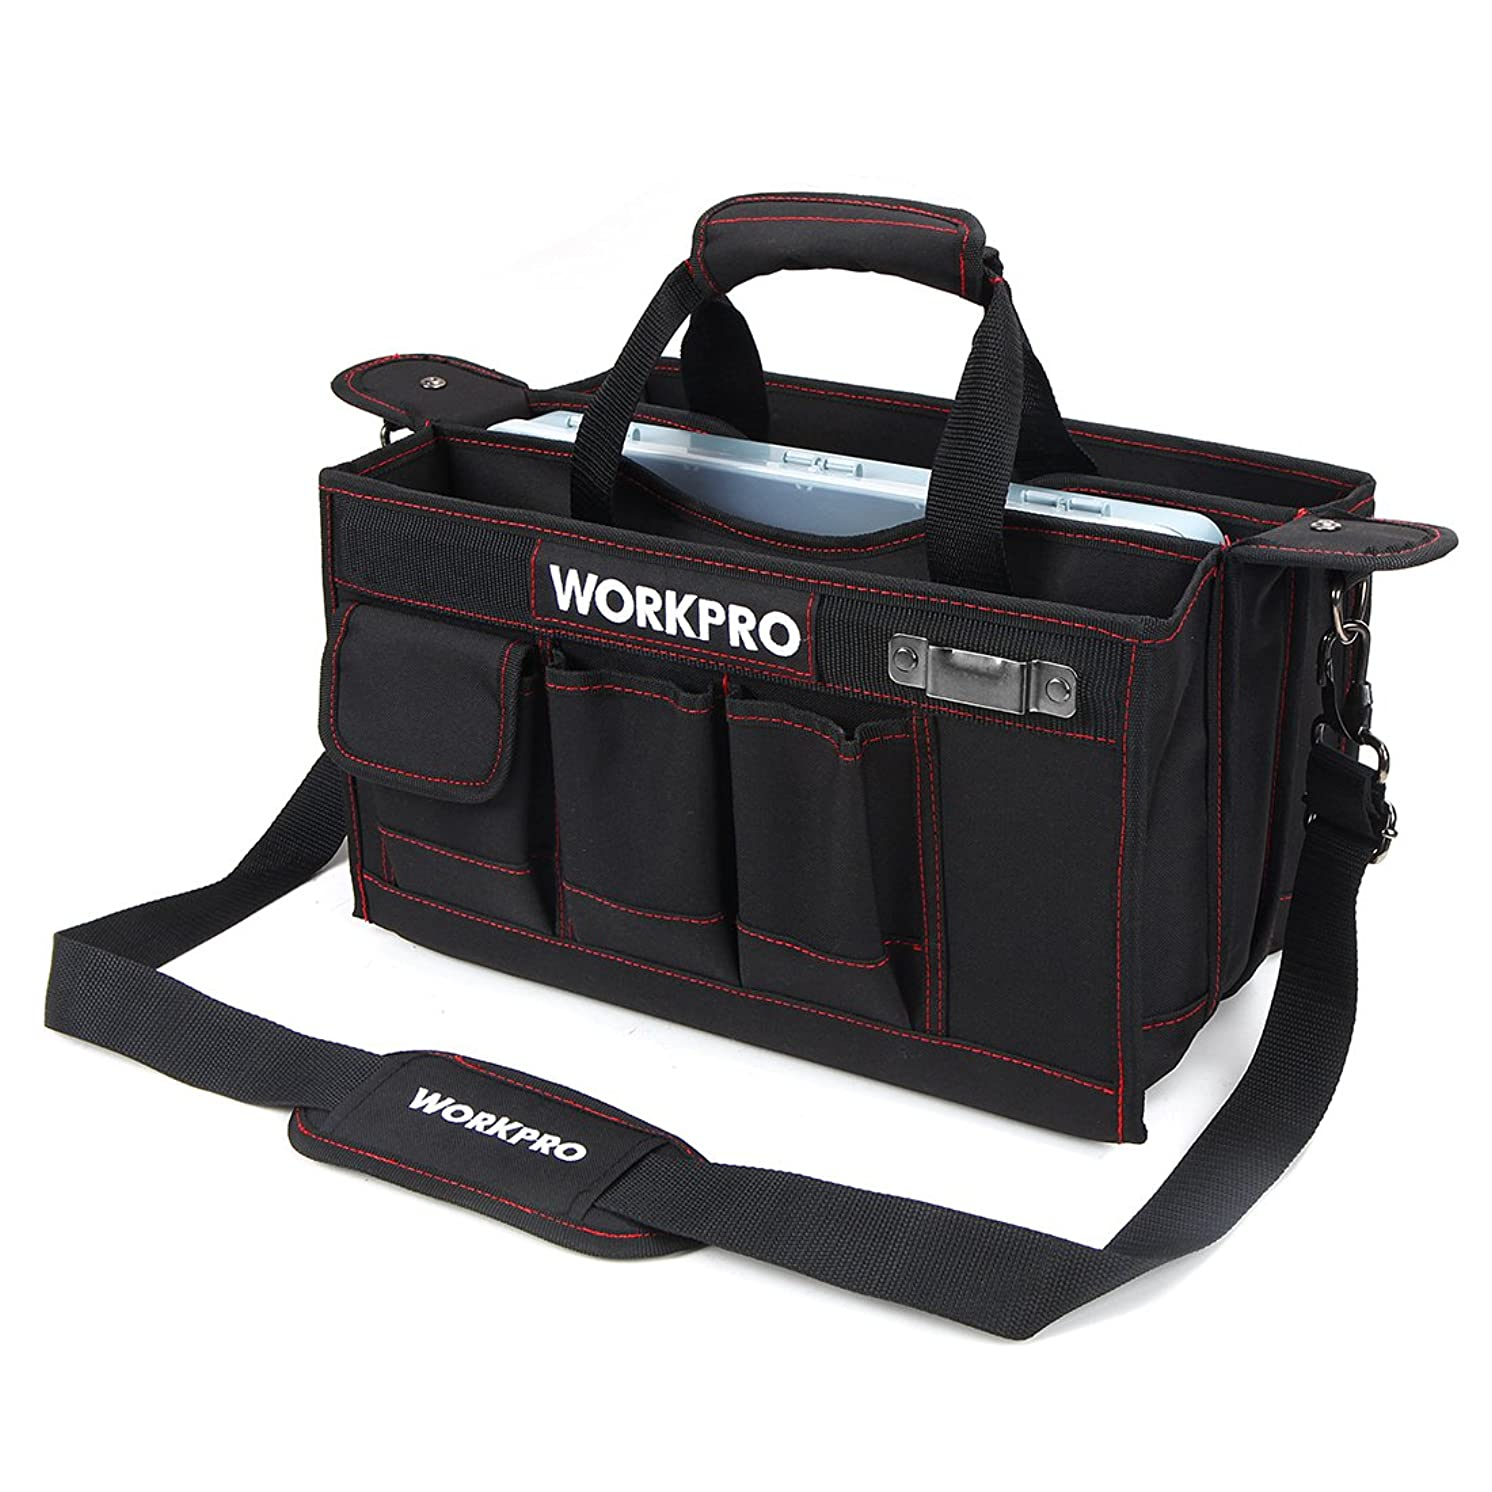 WORKPRO 15-inch Tool Storage Bag Collapsible with Center Tray for Hardware Parts, Adjustable Shoulder Strap Included